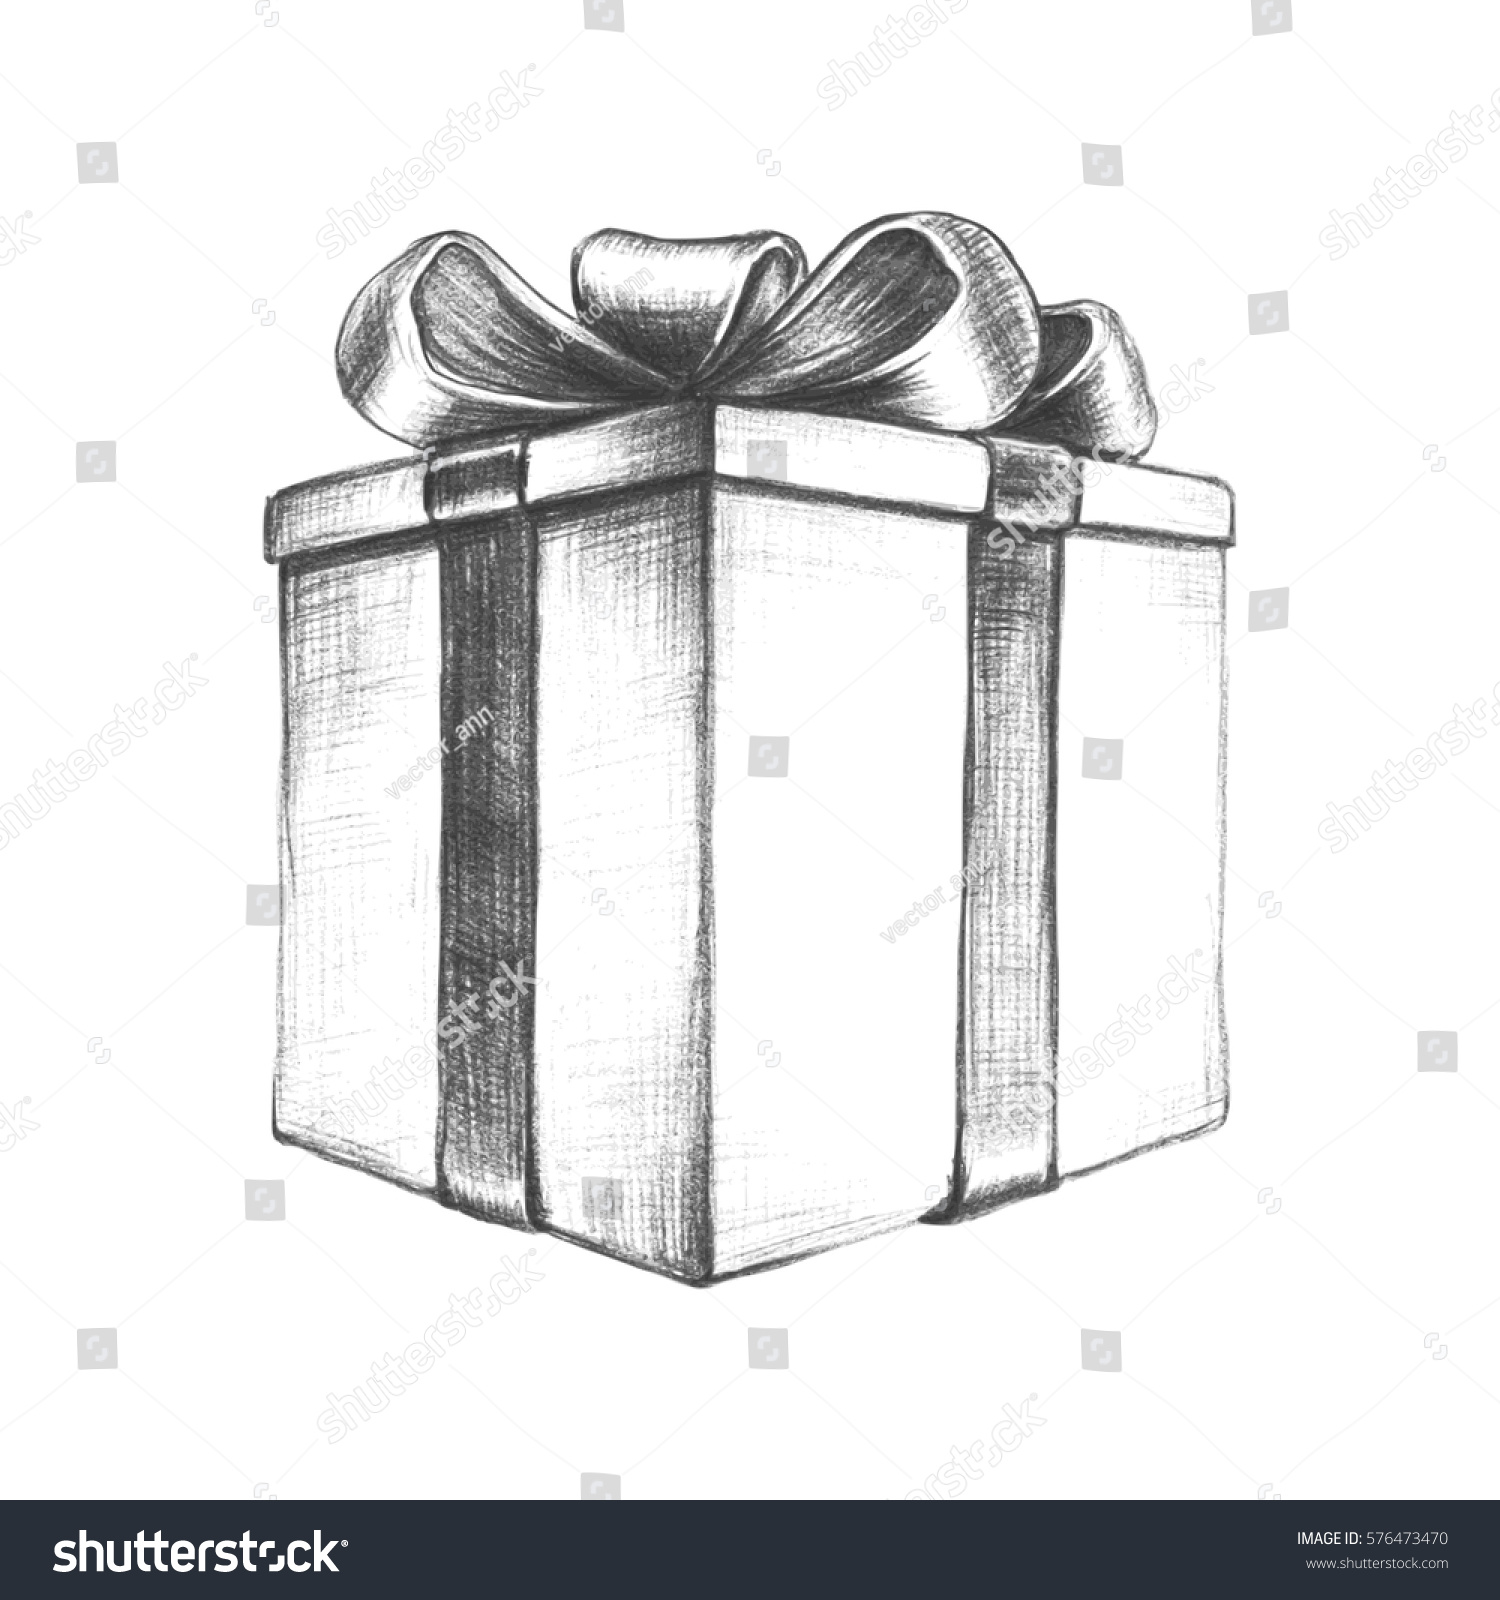 Pencil sketch of present box with a bow and ribbon hand drawn vector vintage